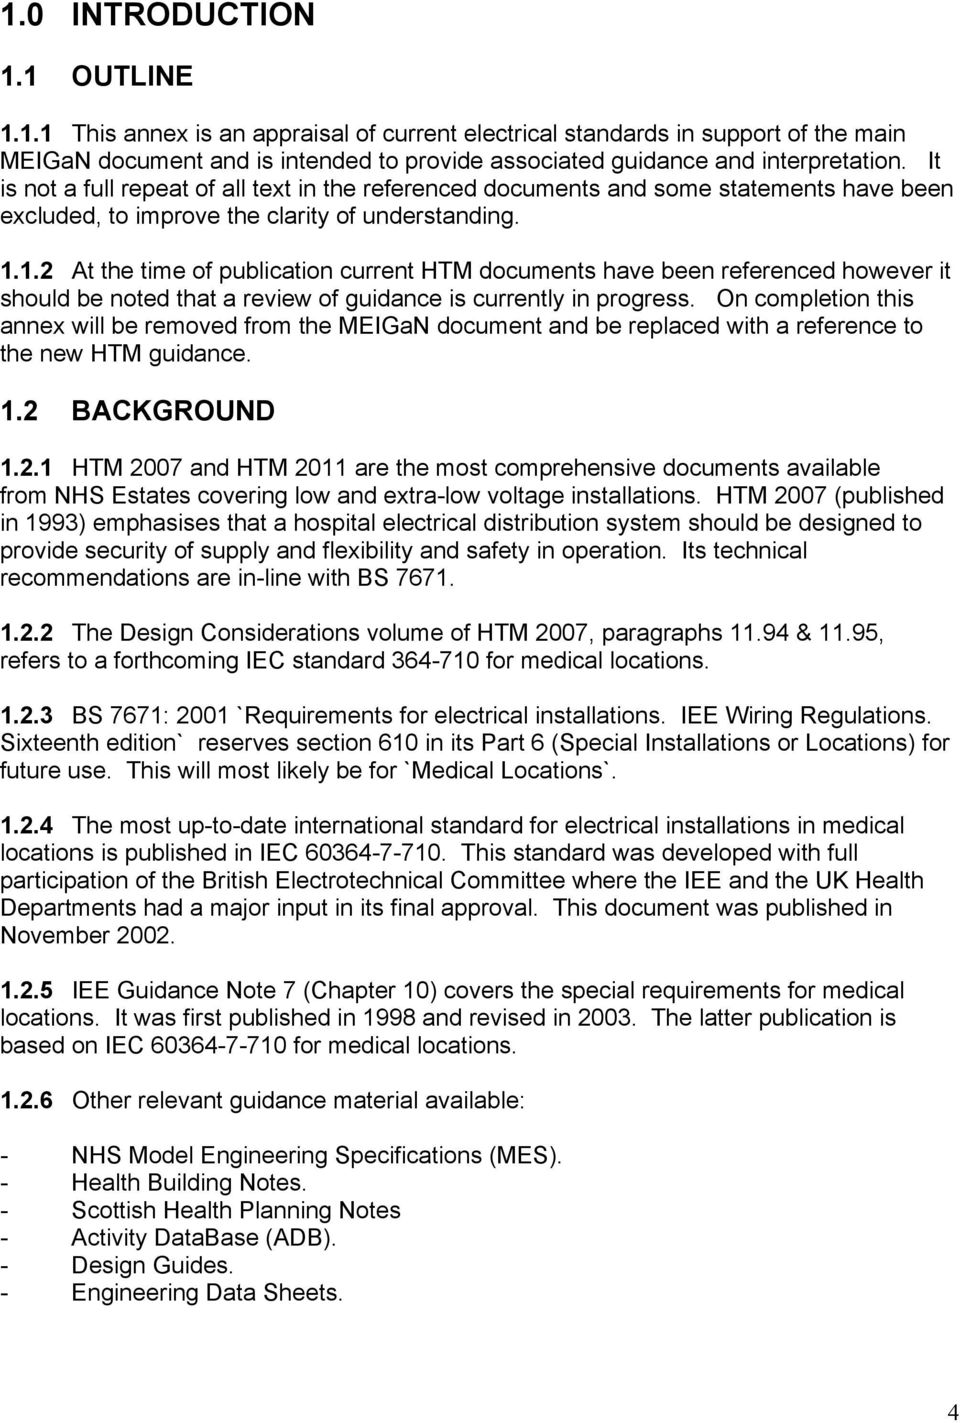 Healthcare Interpretation Of Iee Guidance Note 7 Chapter 10 And Electrical Installation Wiring Pictures November 2011 12 At The Time Publication Current Htm Documents Have Been Referenced However It Should Be